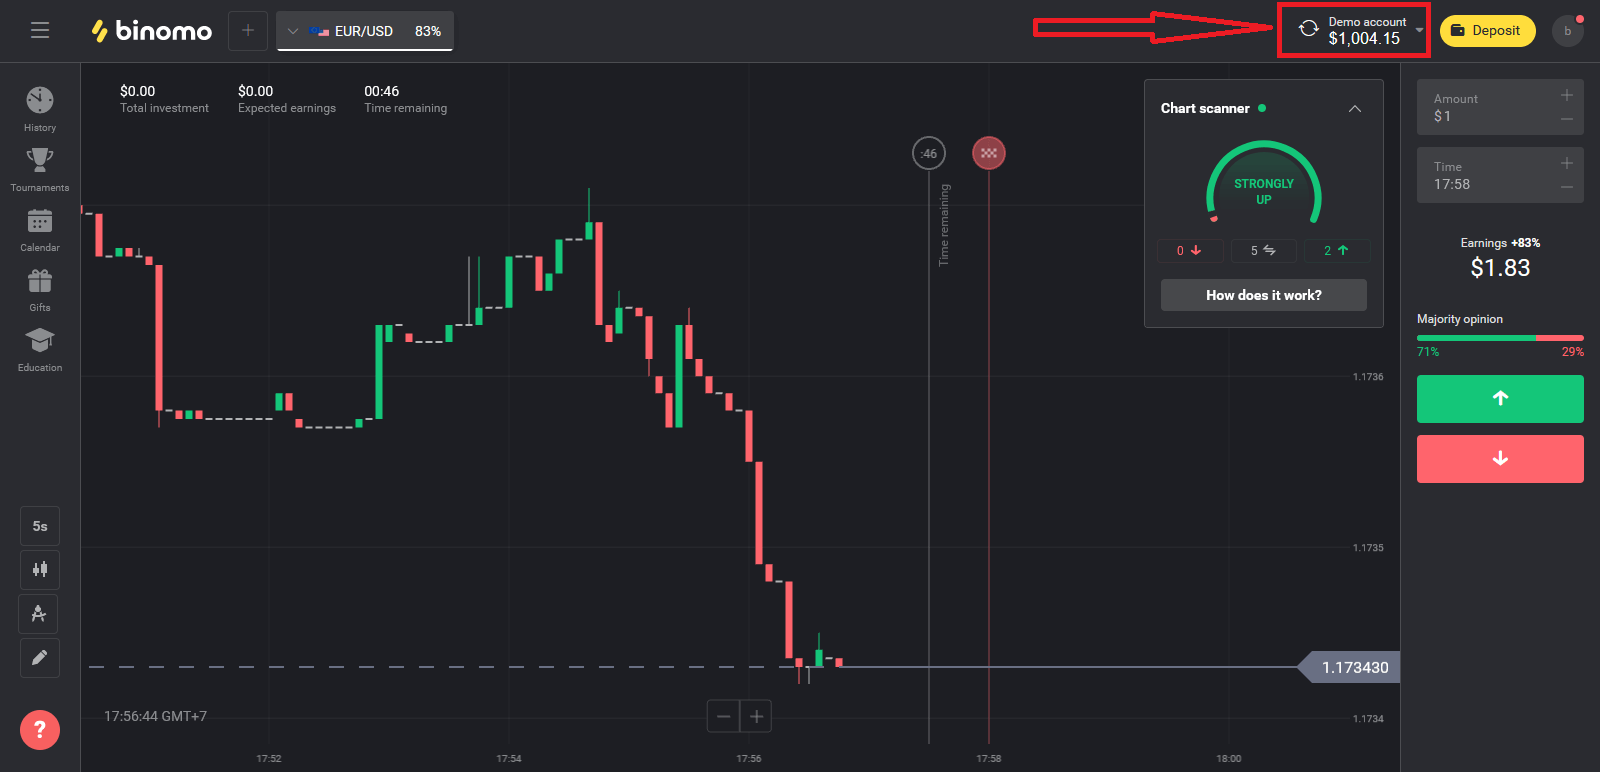 How to Open a Trading Account and Register at Binomo